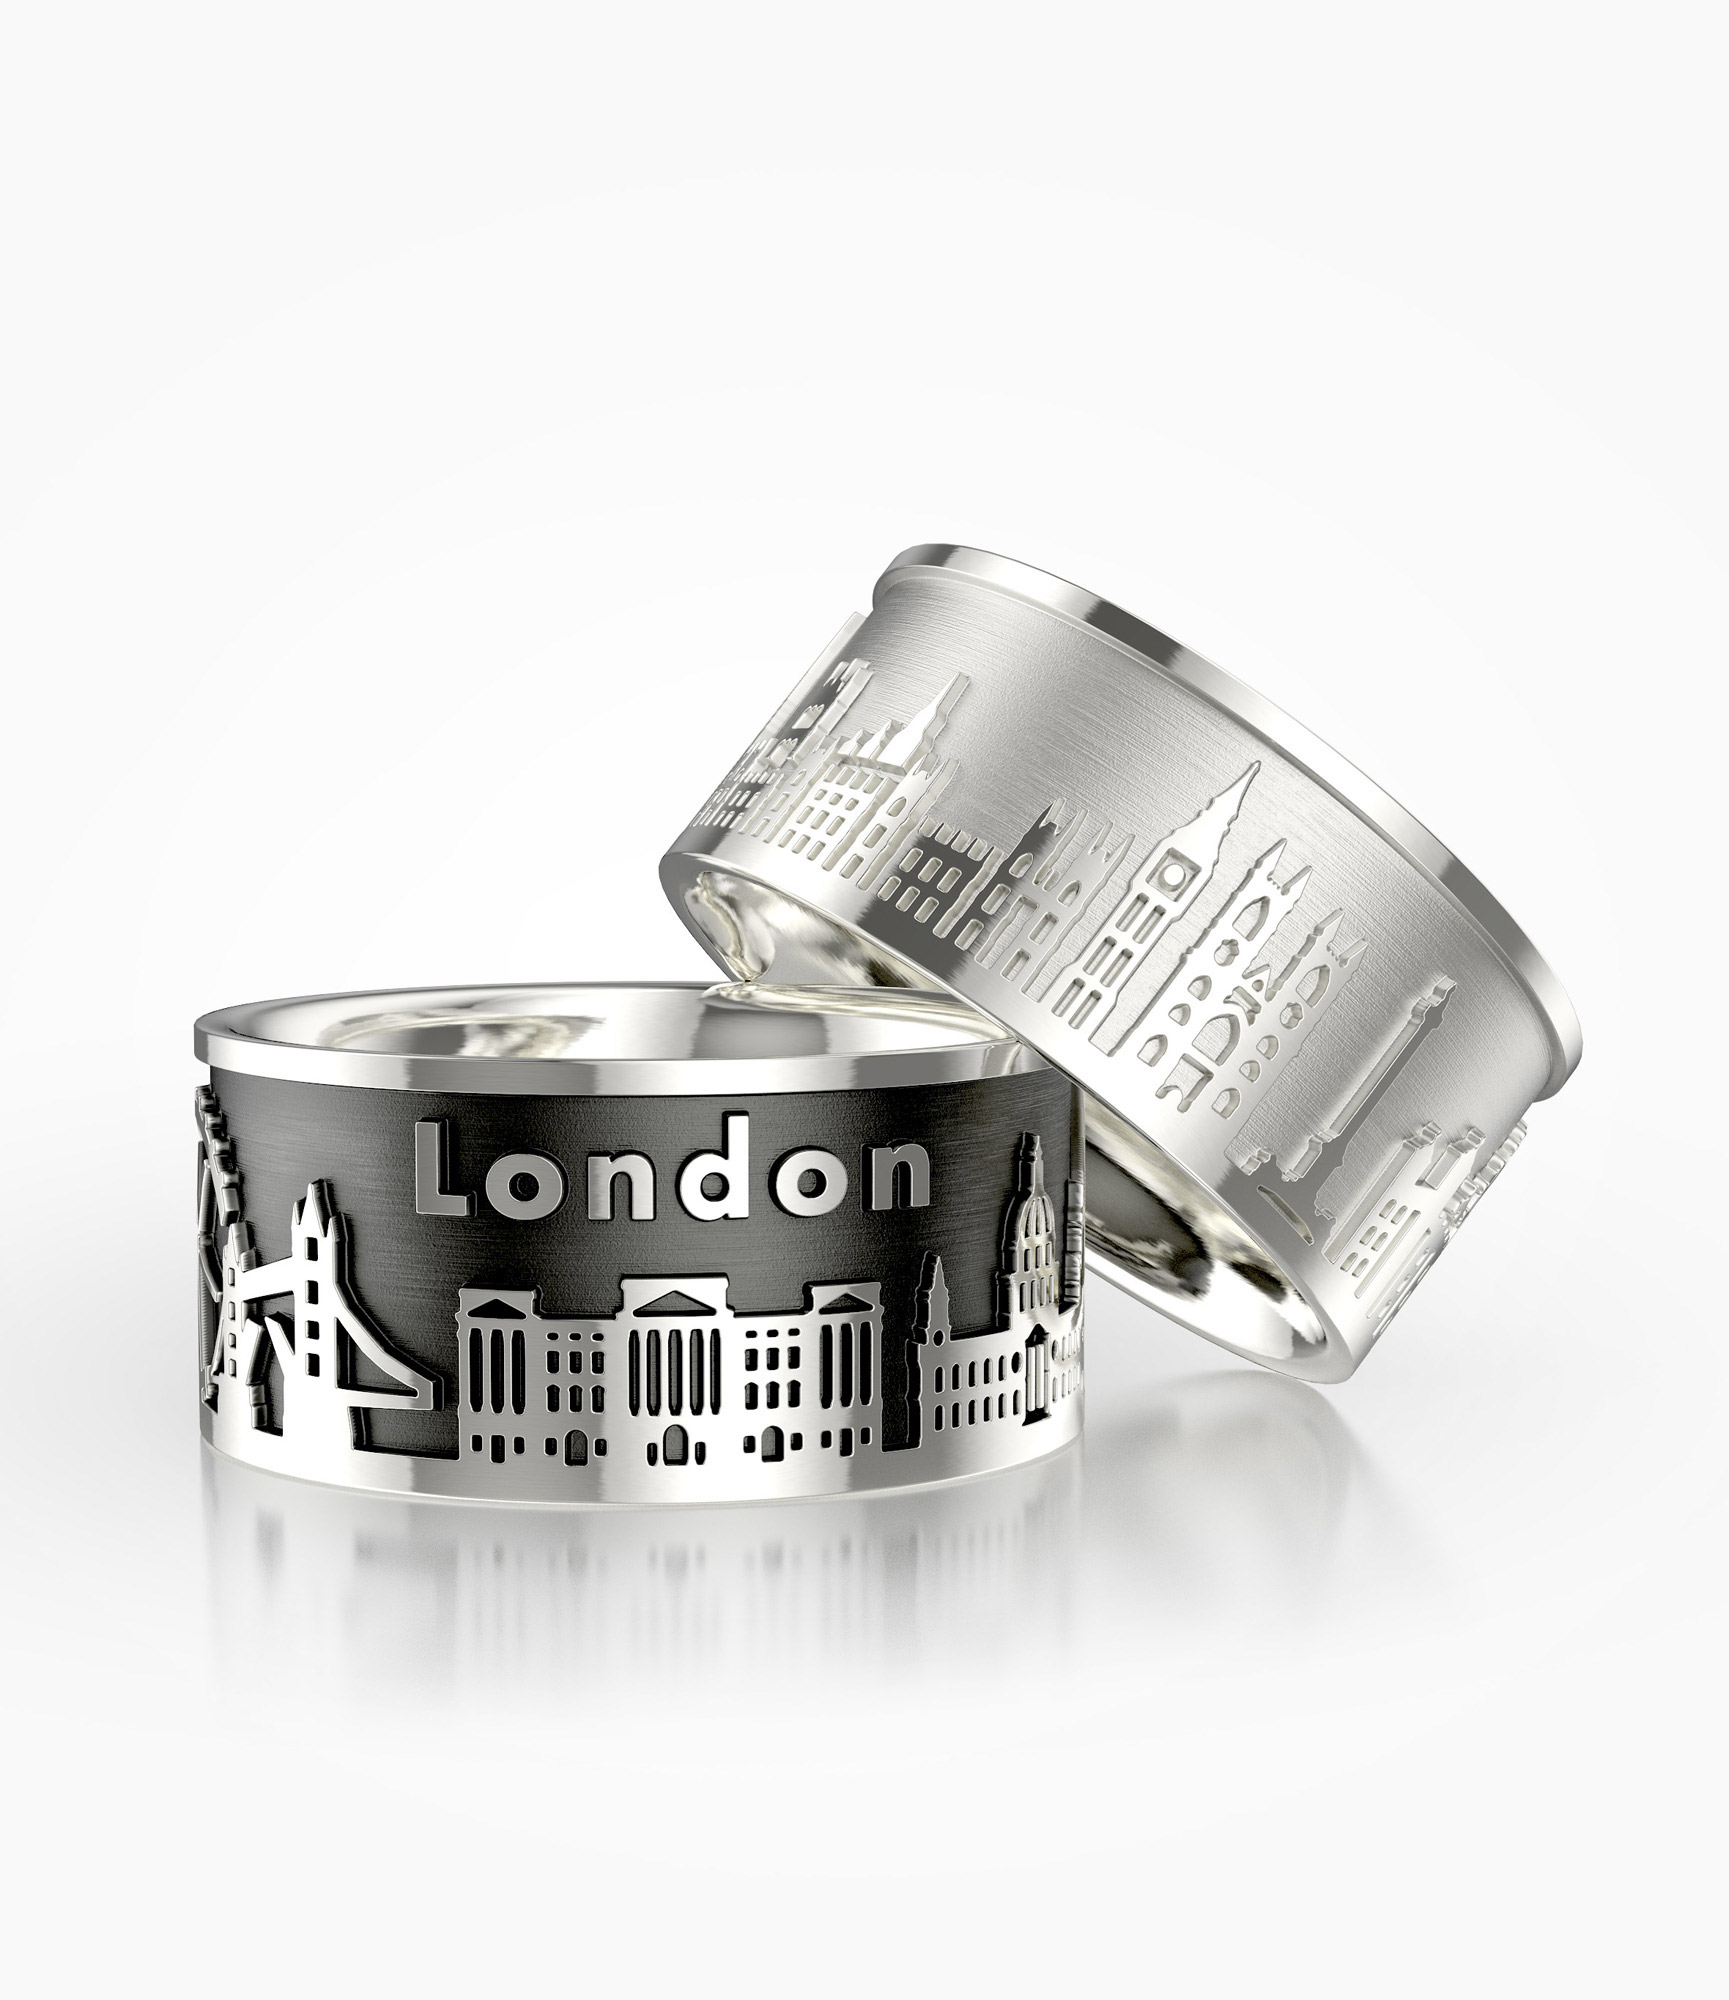 London's sights in 925 silver